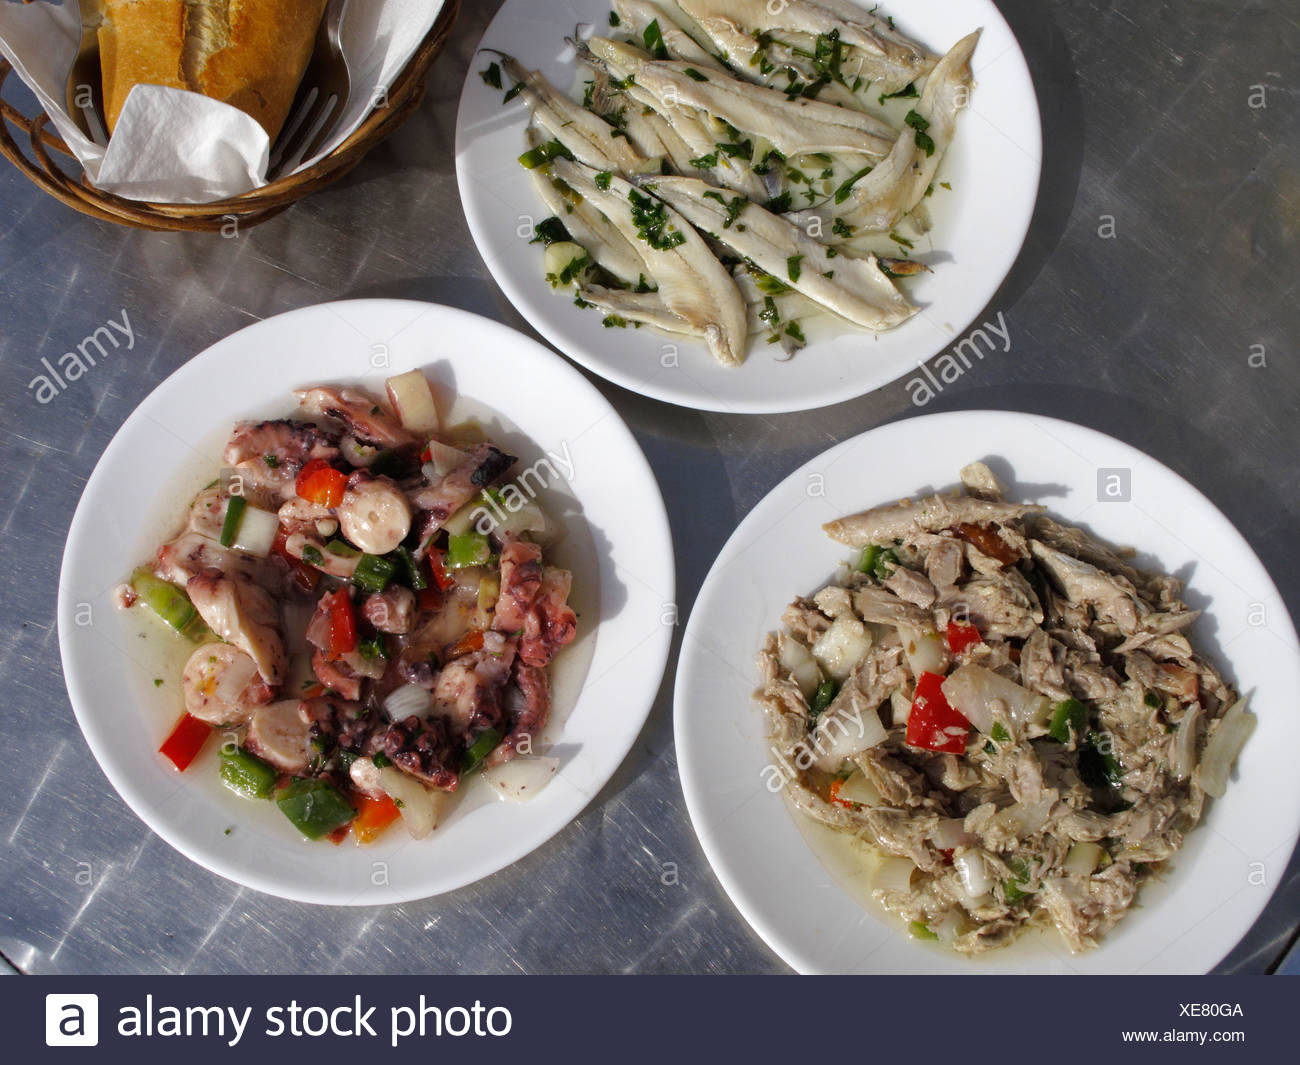 Seafood tapa, La Gomera, Canary Islands, Spain, Europe - Stock Image